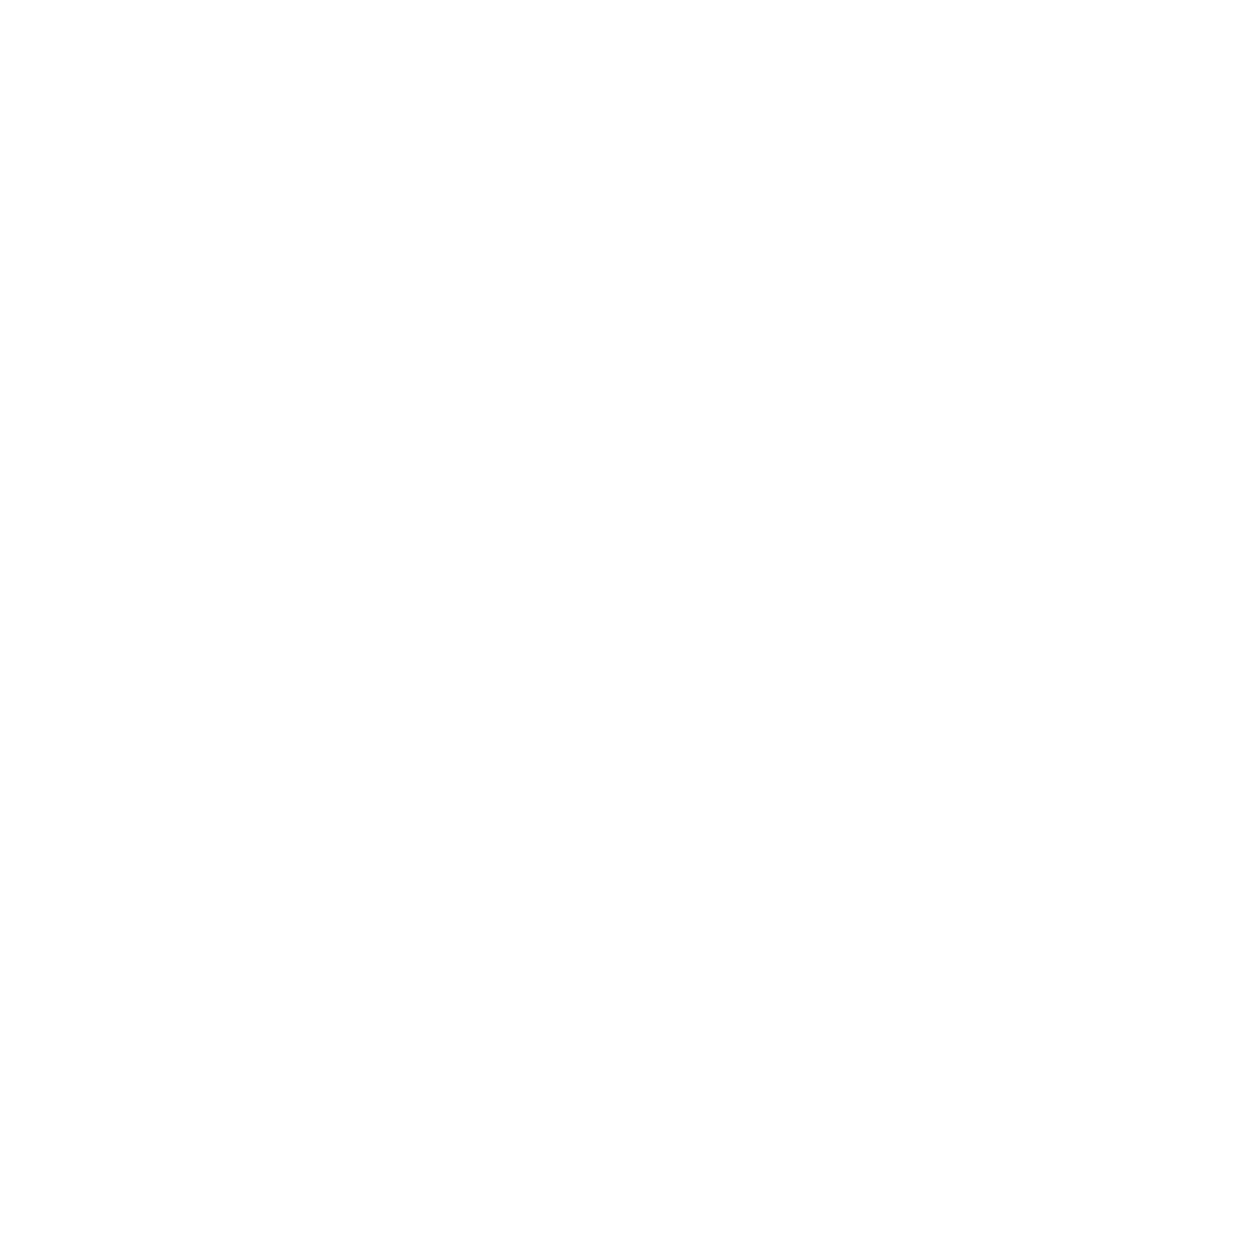 World Land Trust - Carbon Balanced Company